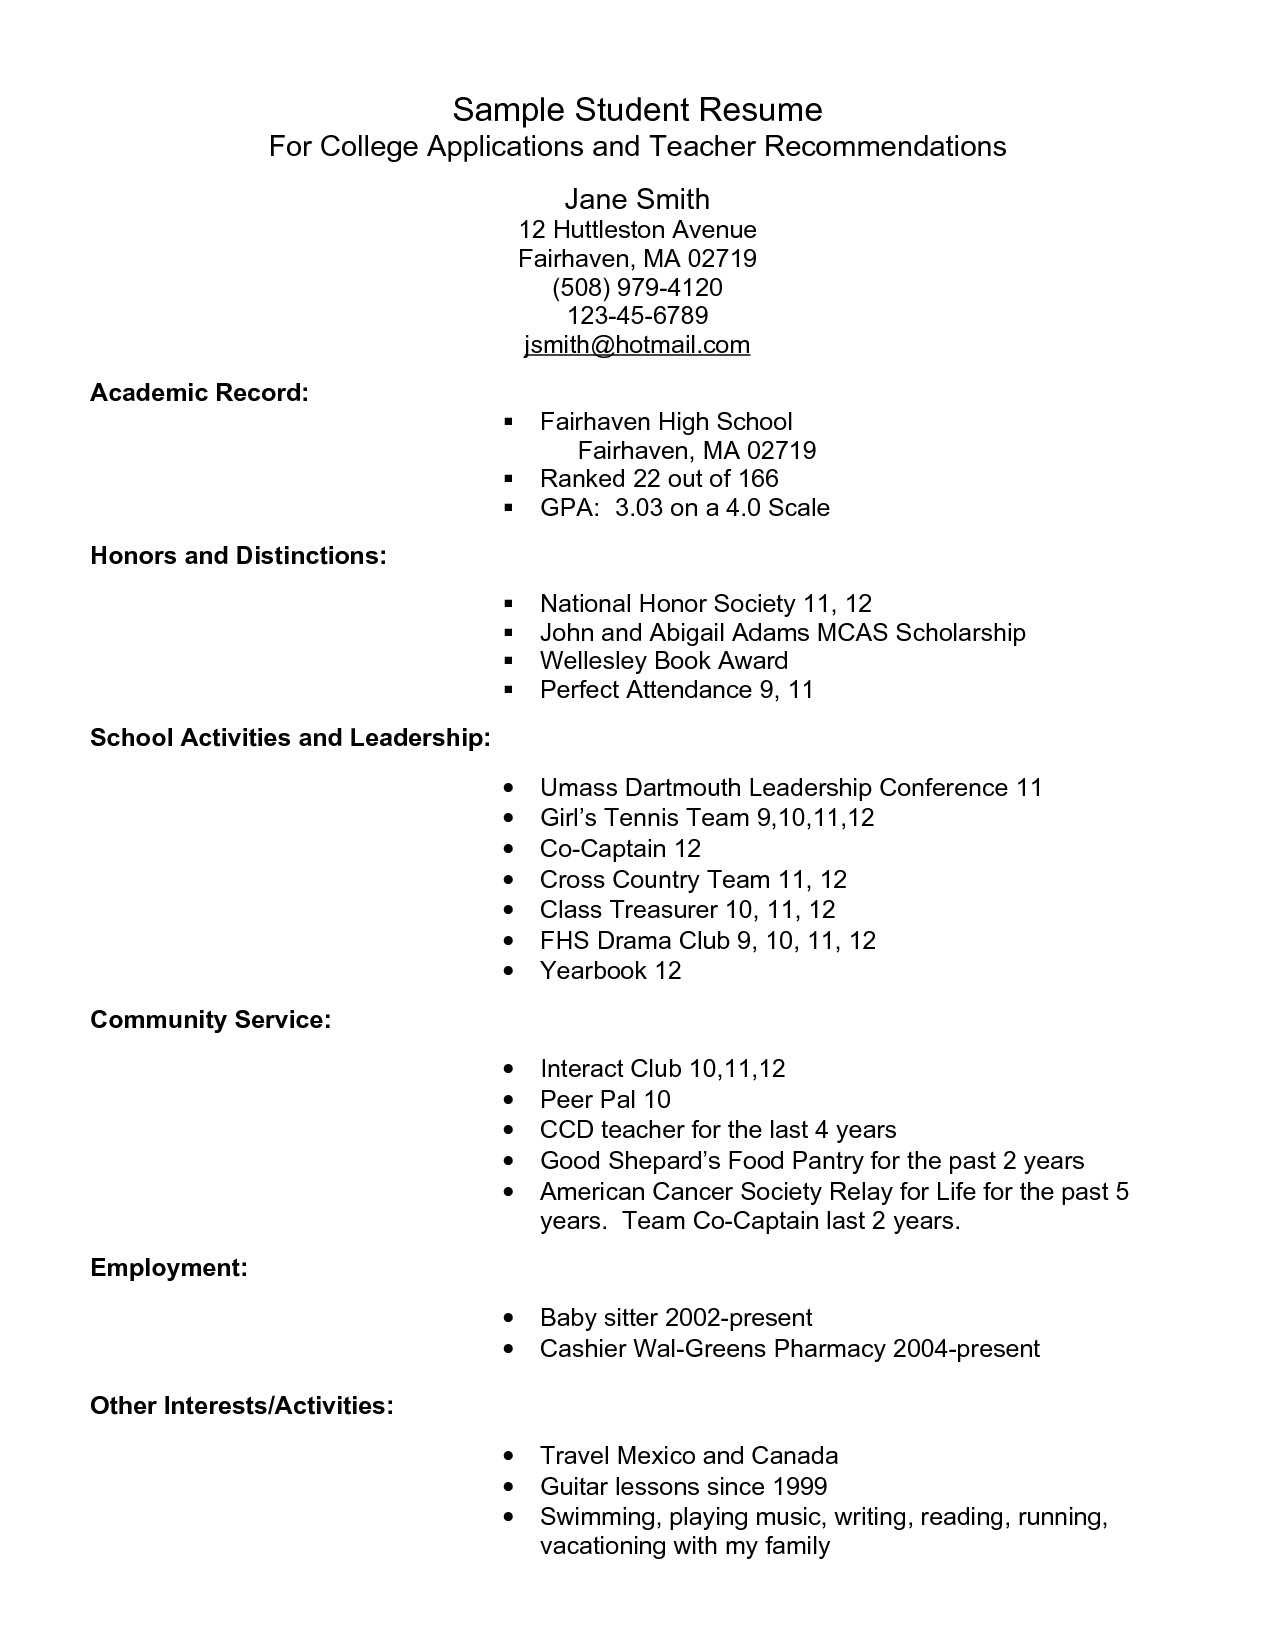 Sample Resume for High School Student Applying to College Example Resume for High School Students for College